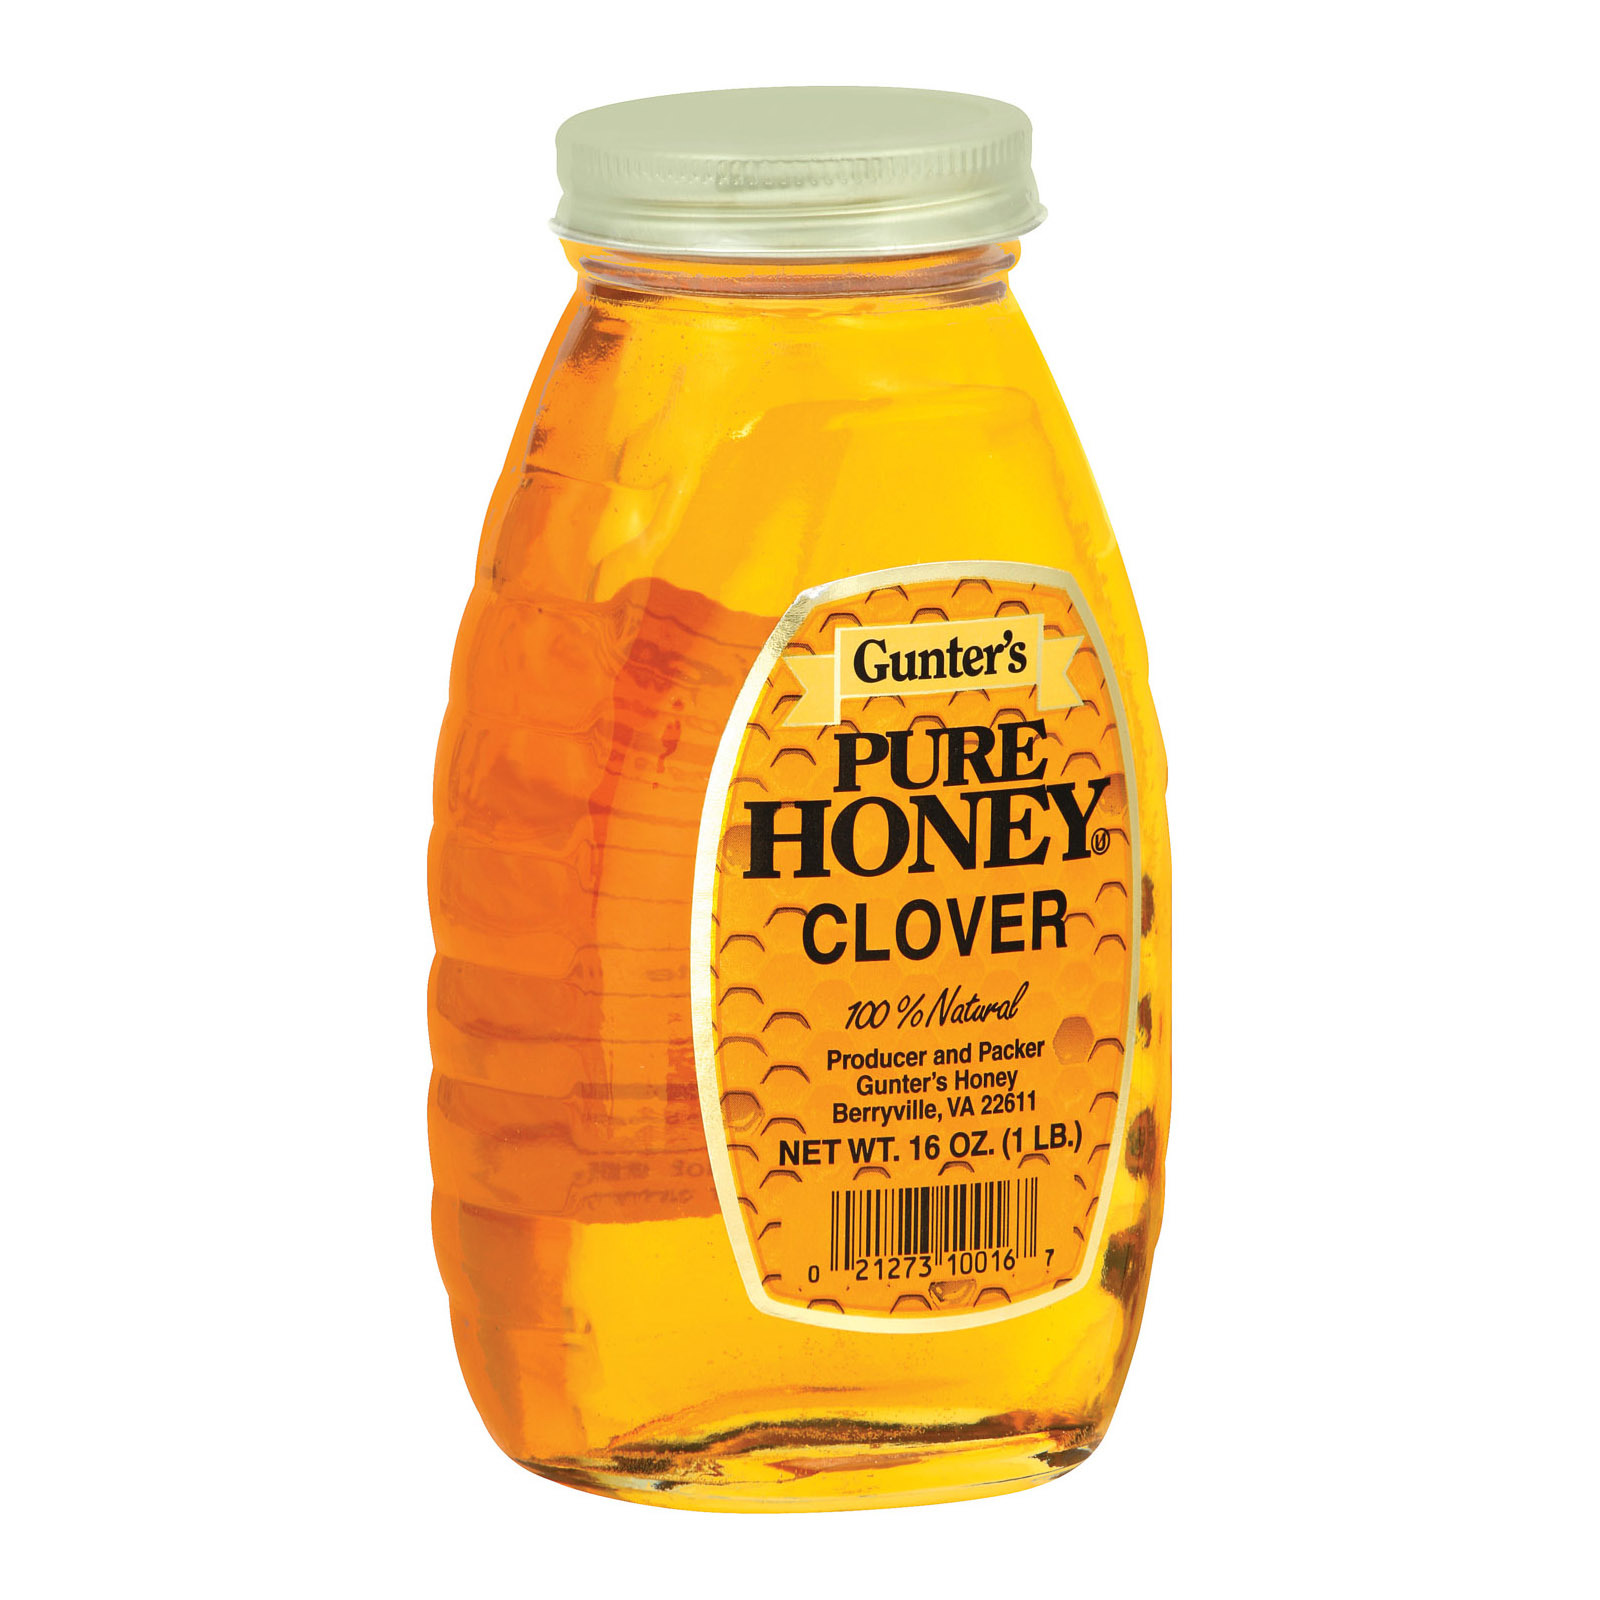 Gunter Pure Clover Honey - 16 oz.